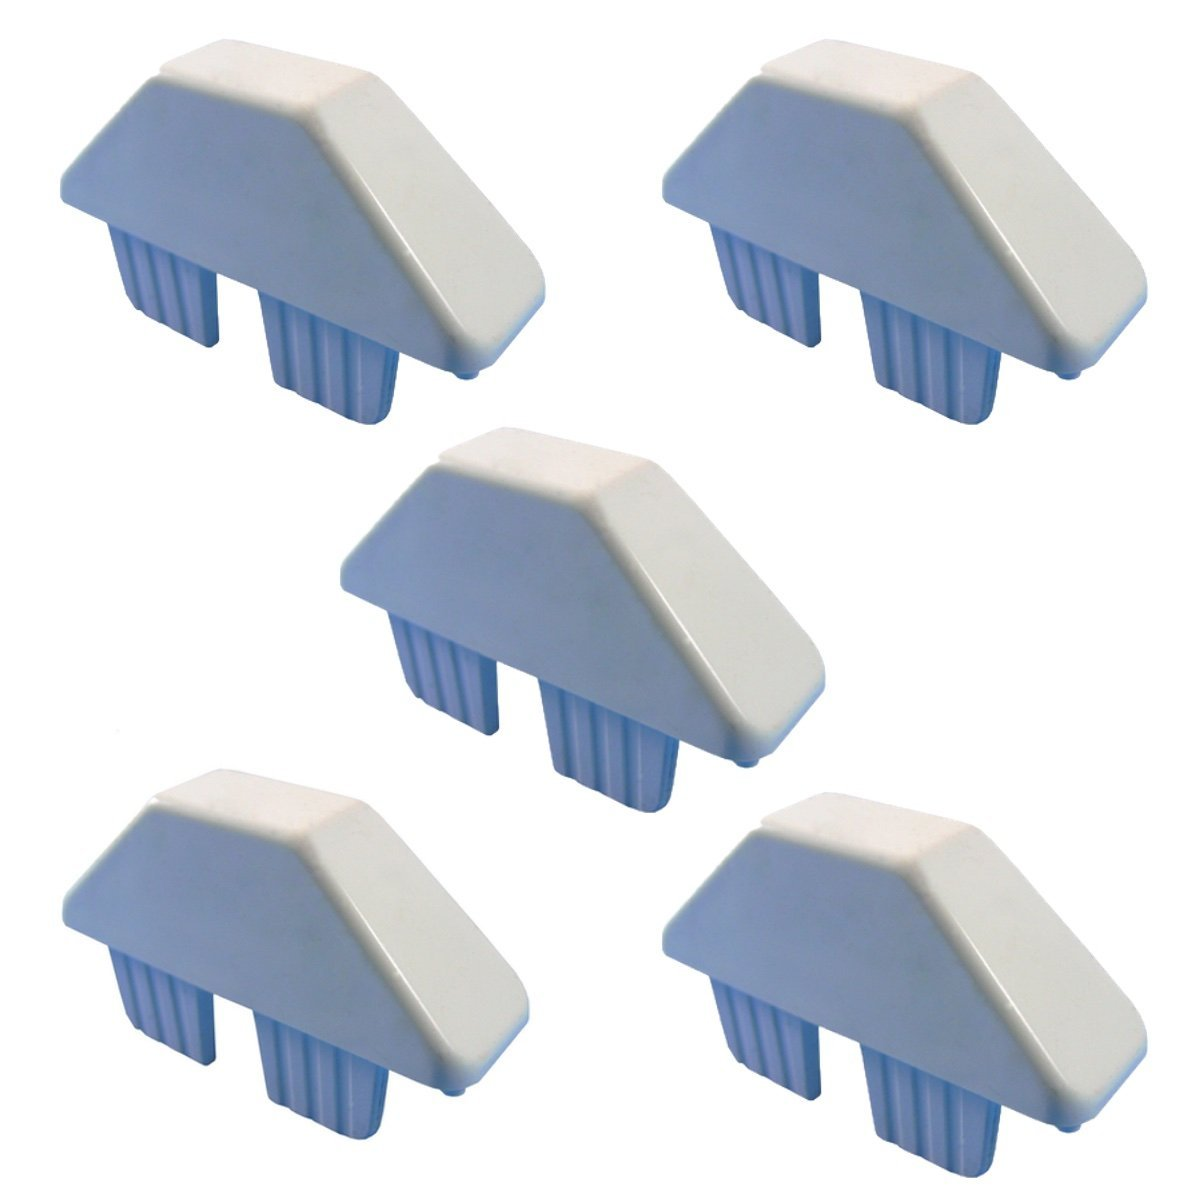 """Vinyl Picket Fence Caps - 7/8"""" x 3"""" Dog Eared Style Vinyl Fence Picket Caps - WHITE Picket Caps - 5 PACK"""